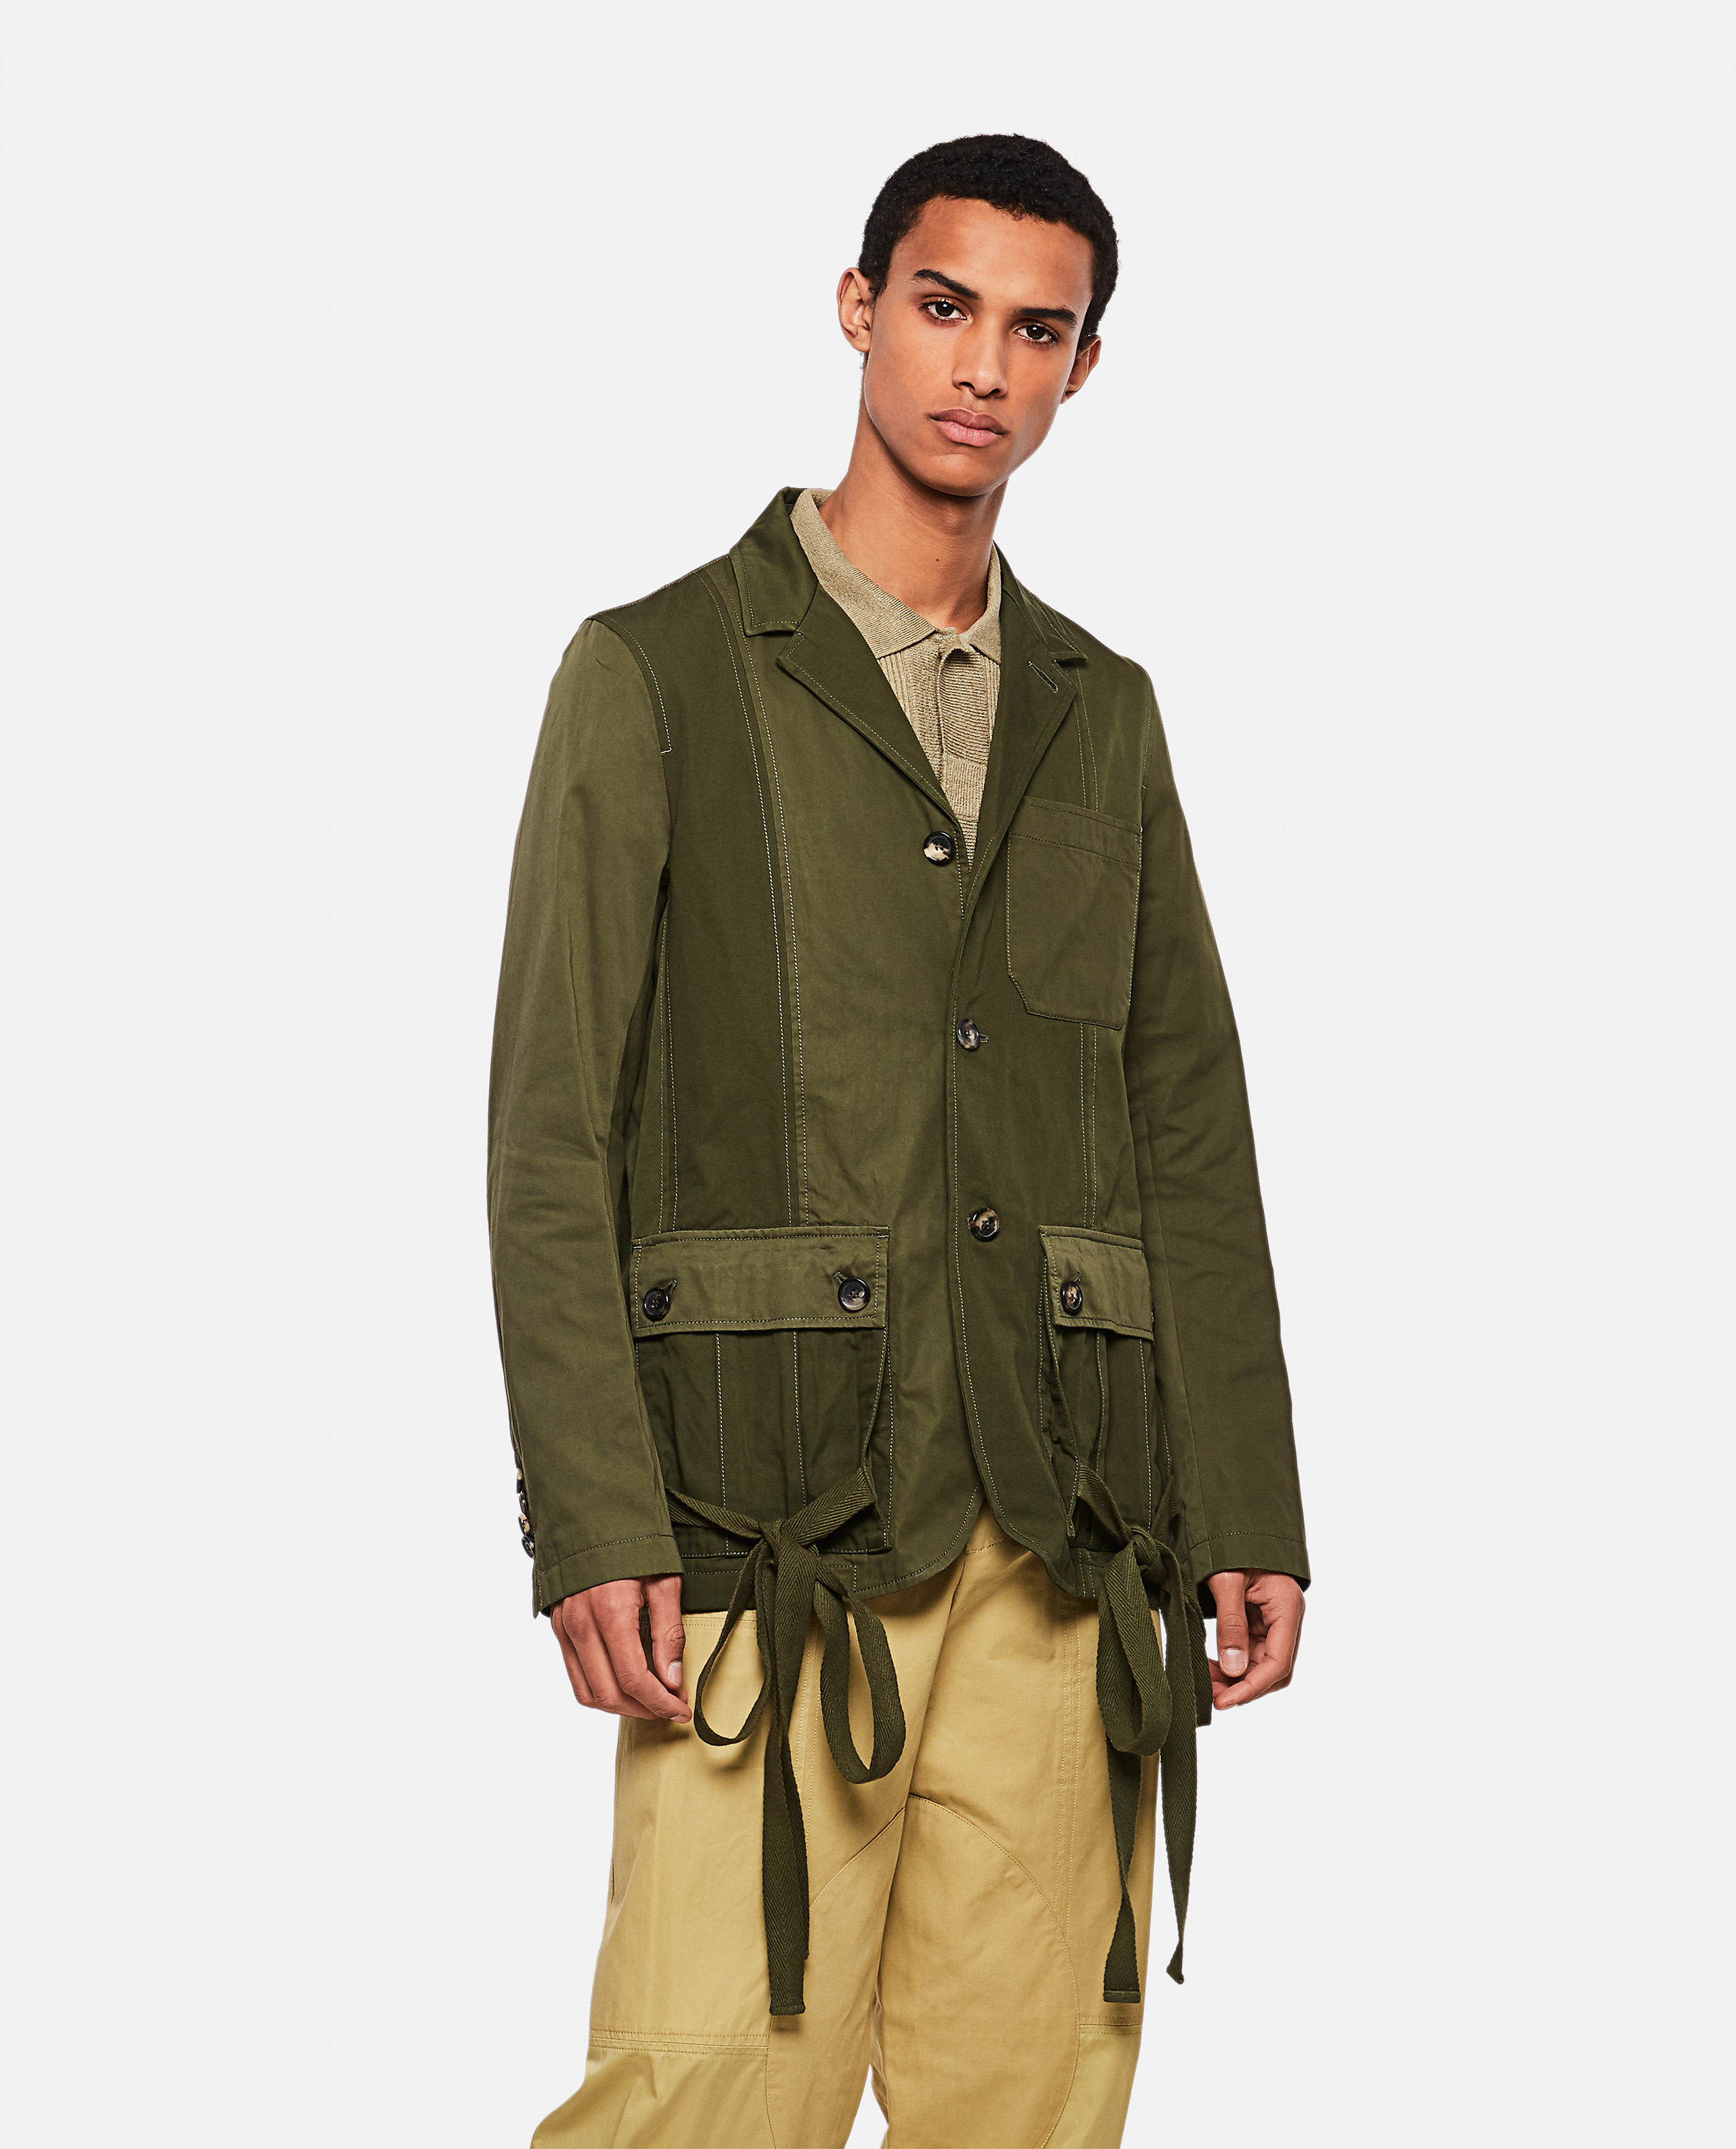 Jw Anderson J.W. ANDERSON JACKET WITH POCKETS